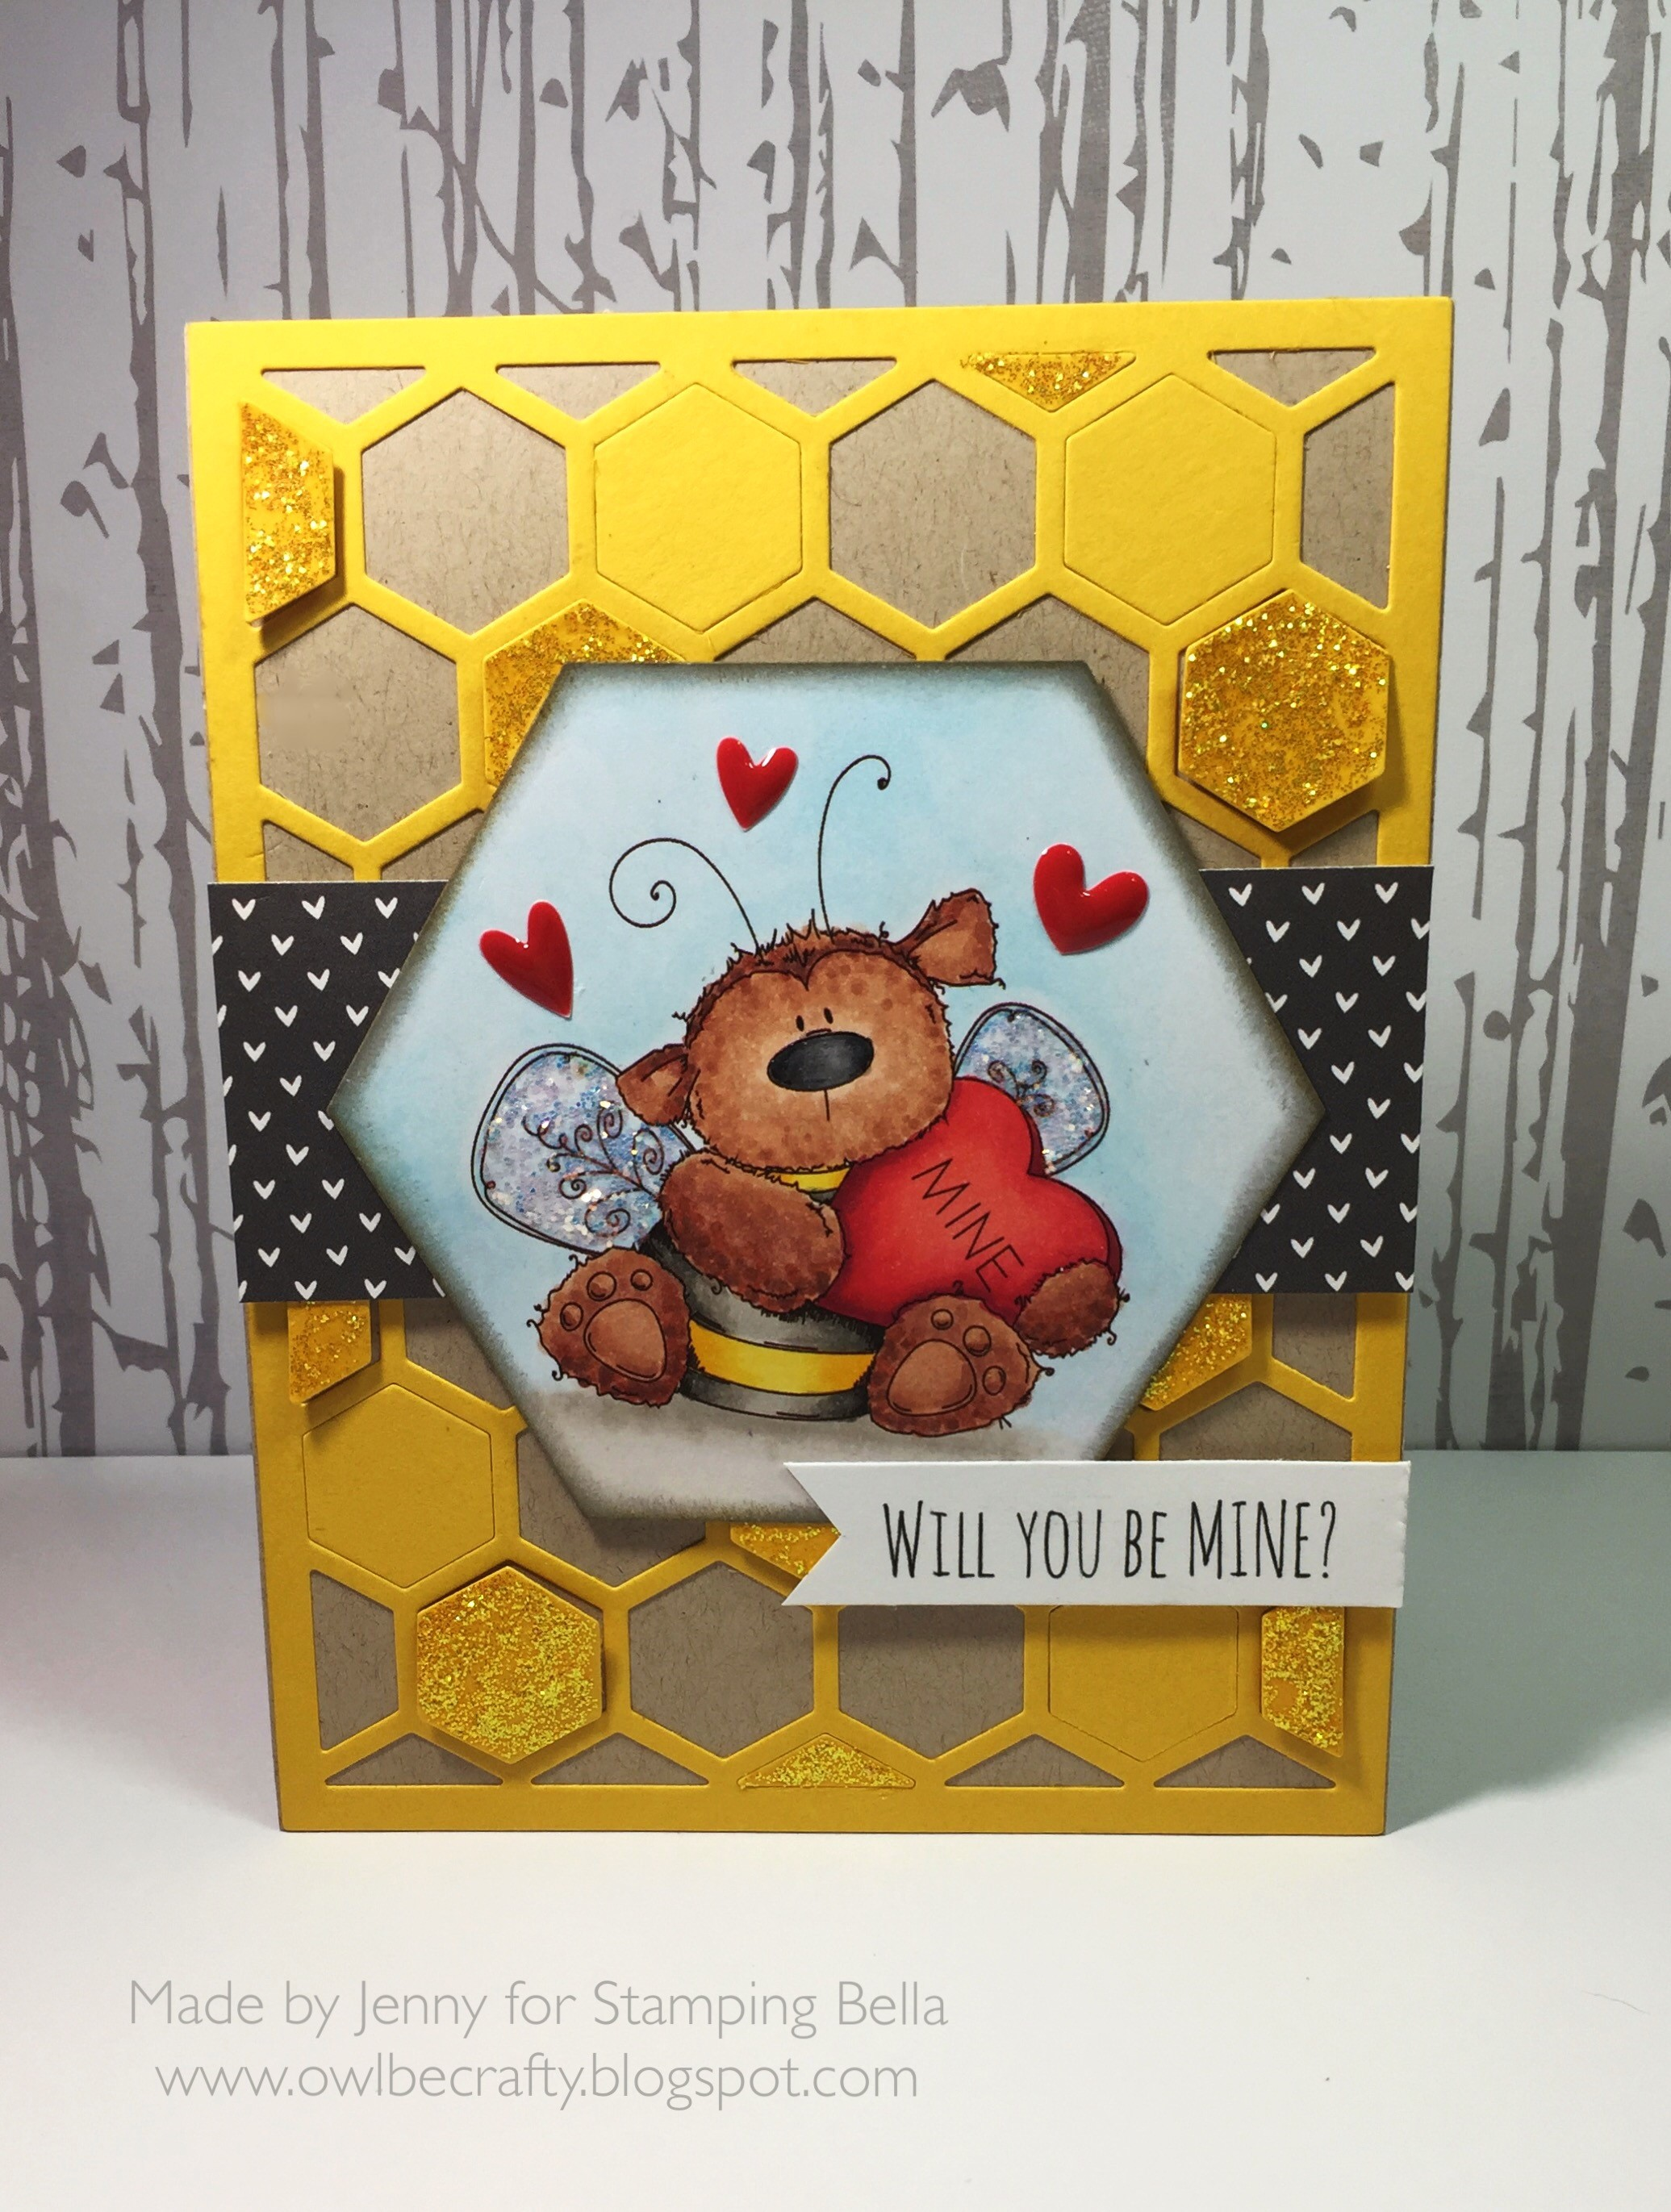 Stamping Bella JANUARY 2017 rubber stamp release- BEE MINE card by Jenny Bordeaux